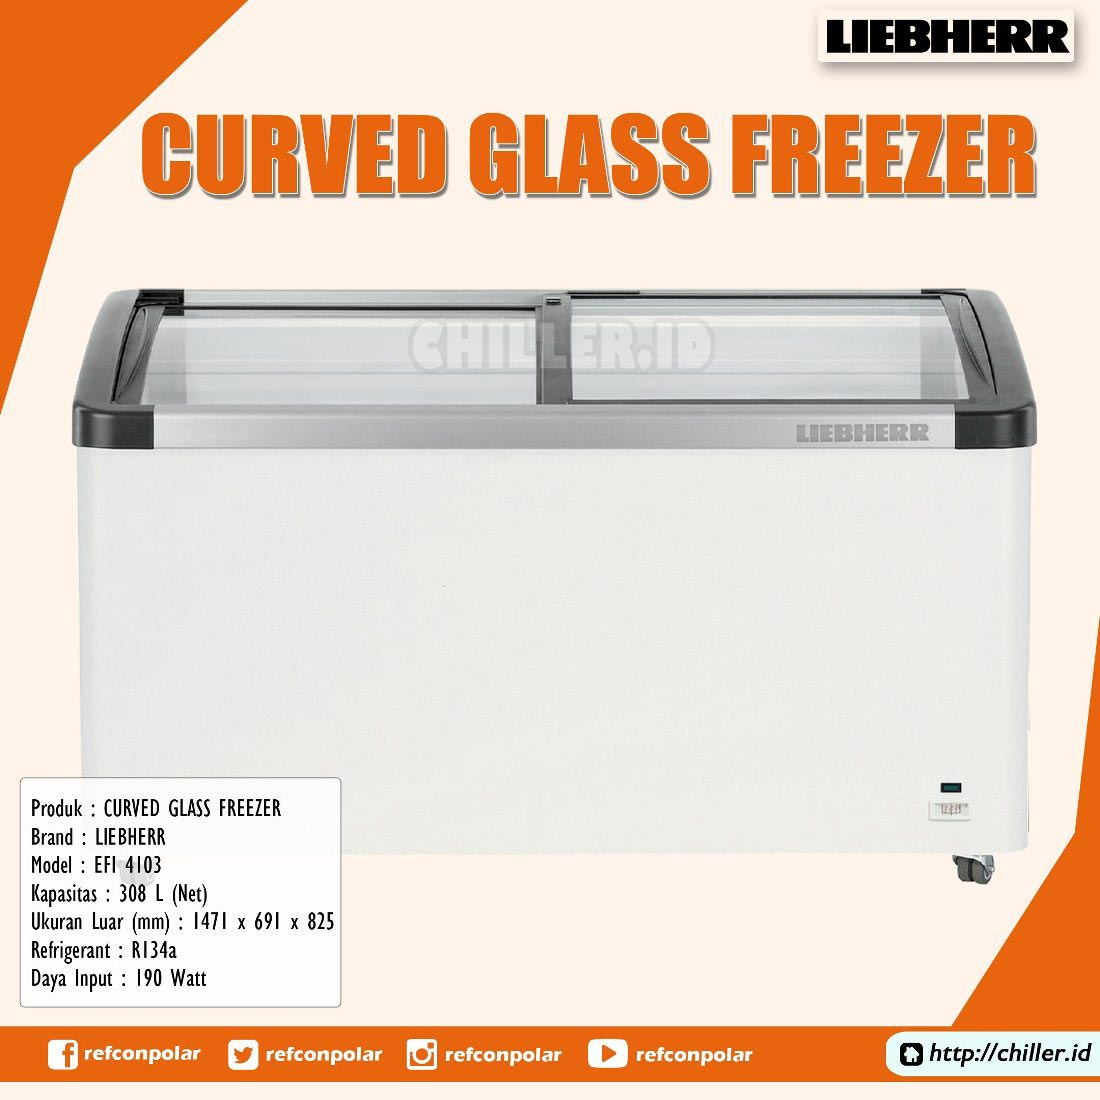 EFI 4103 Liebherr Curved Glass Freezer